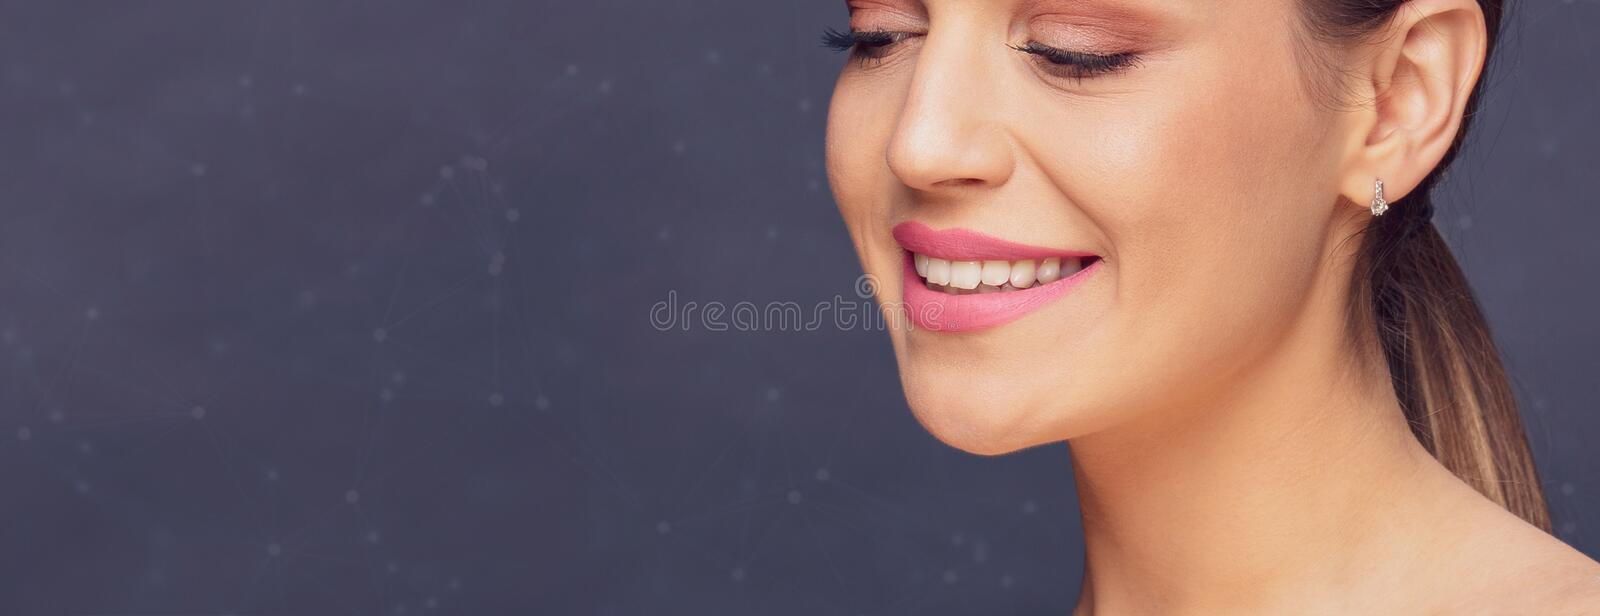 Dental health concept -Healthy beautiful woman teeth and smile. royalty free stock photography